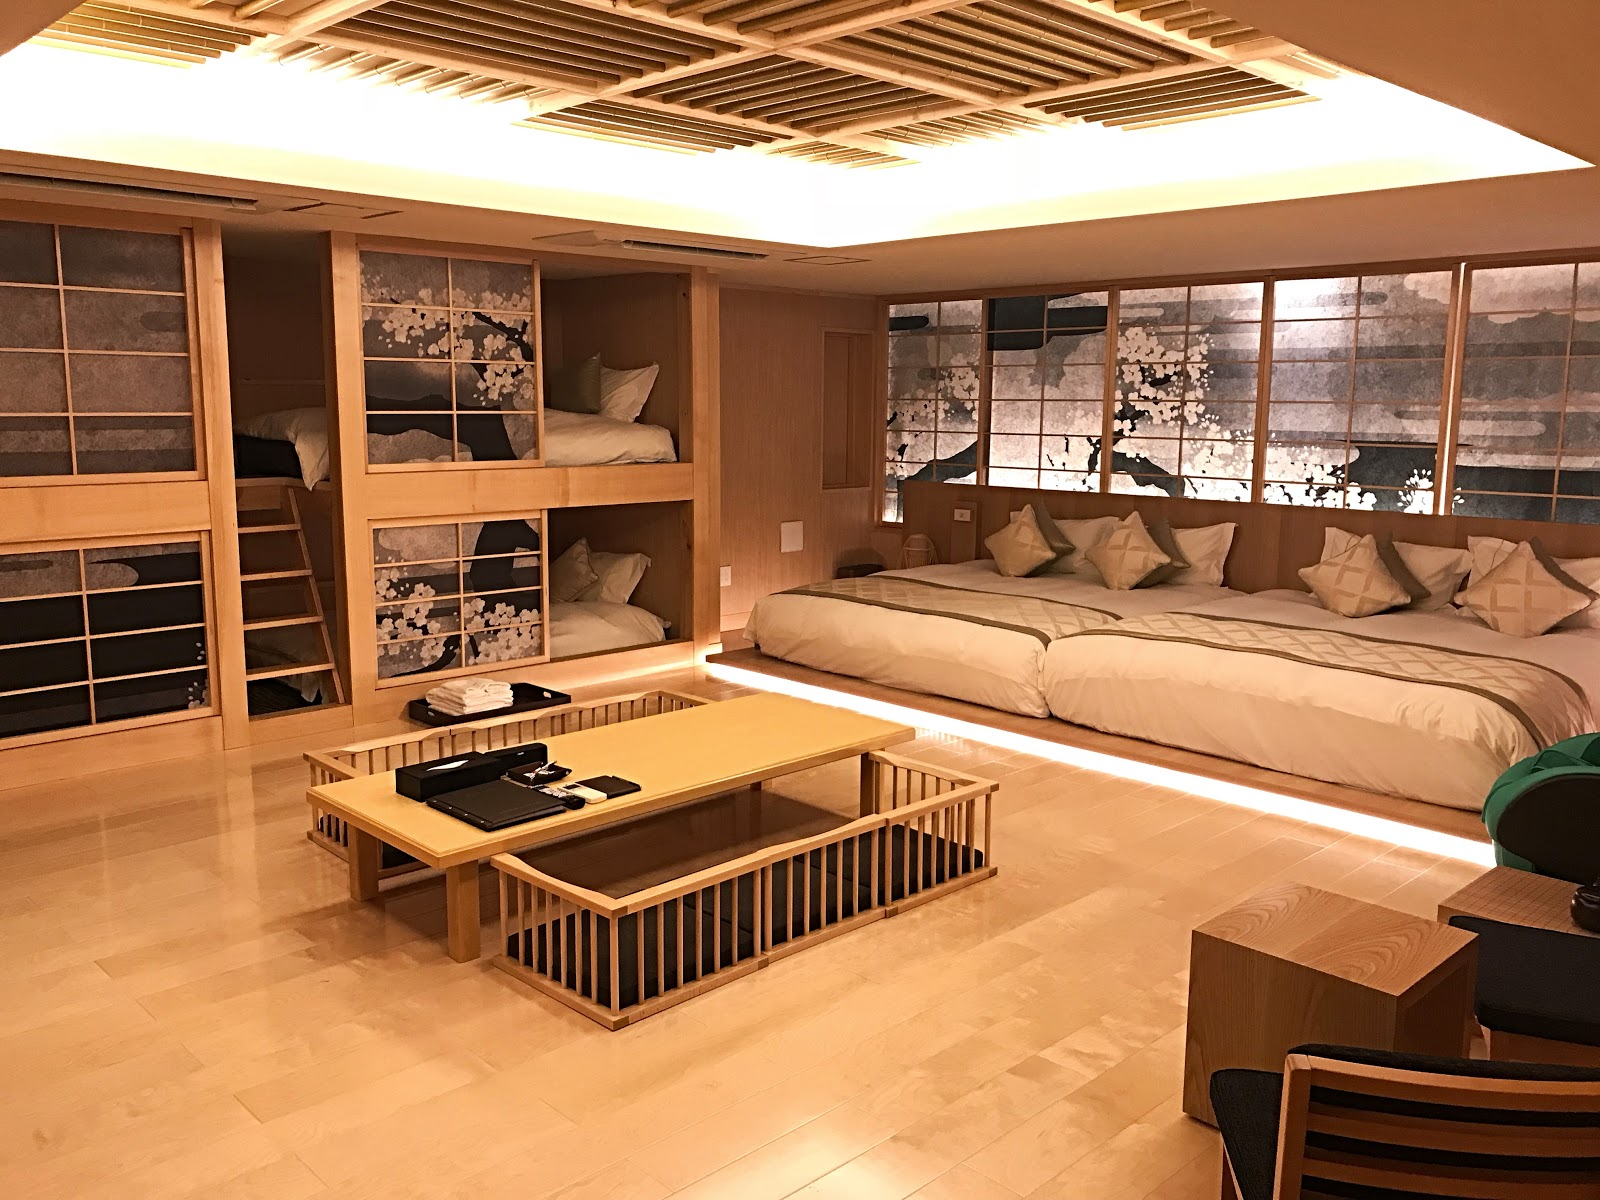 Hotel review tokyo a night at the upscale centurion for Classic house akasaka